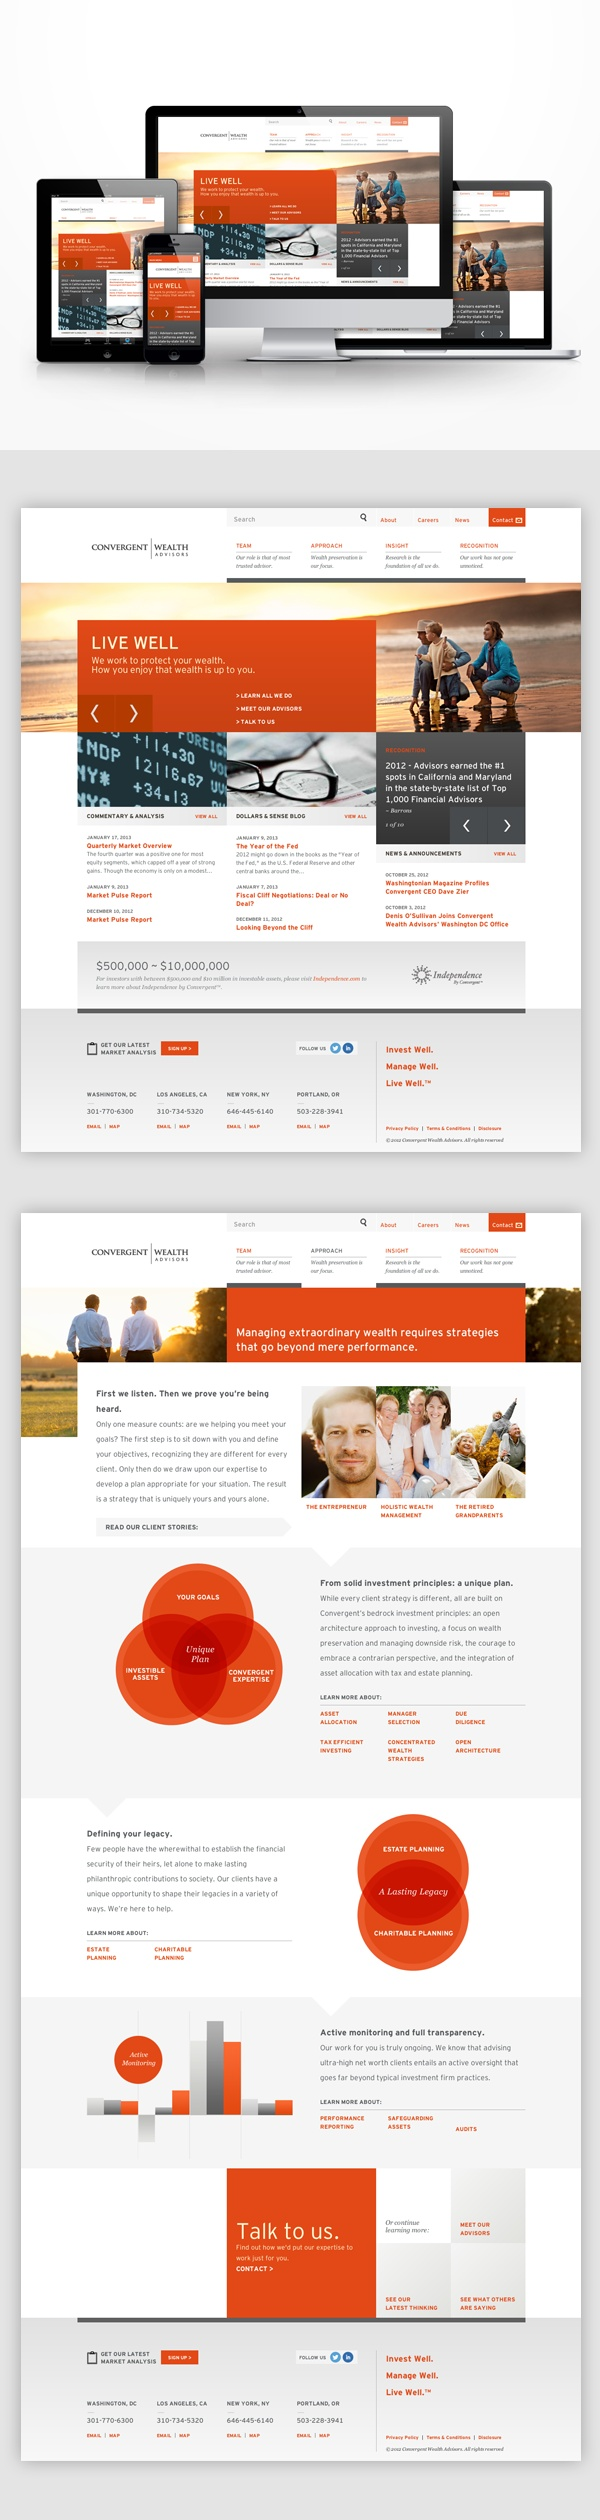 Convergent Wealth Advisors - Responsive website.  Designed by Sun Yun. #sunyun